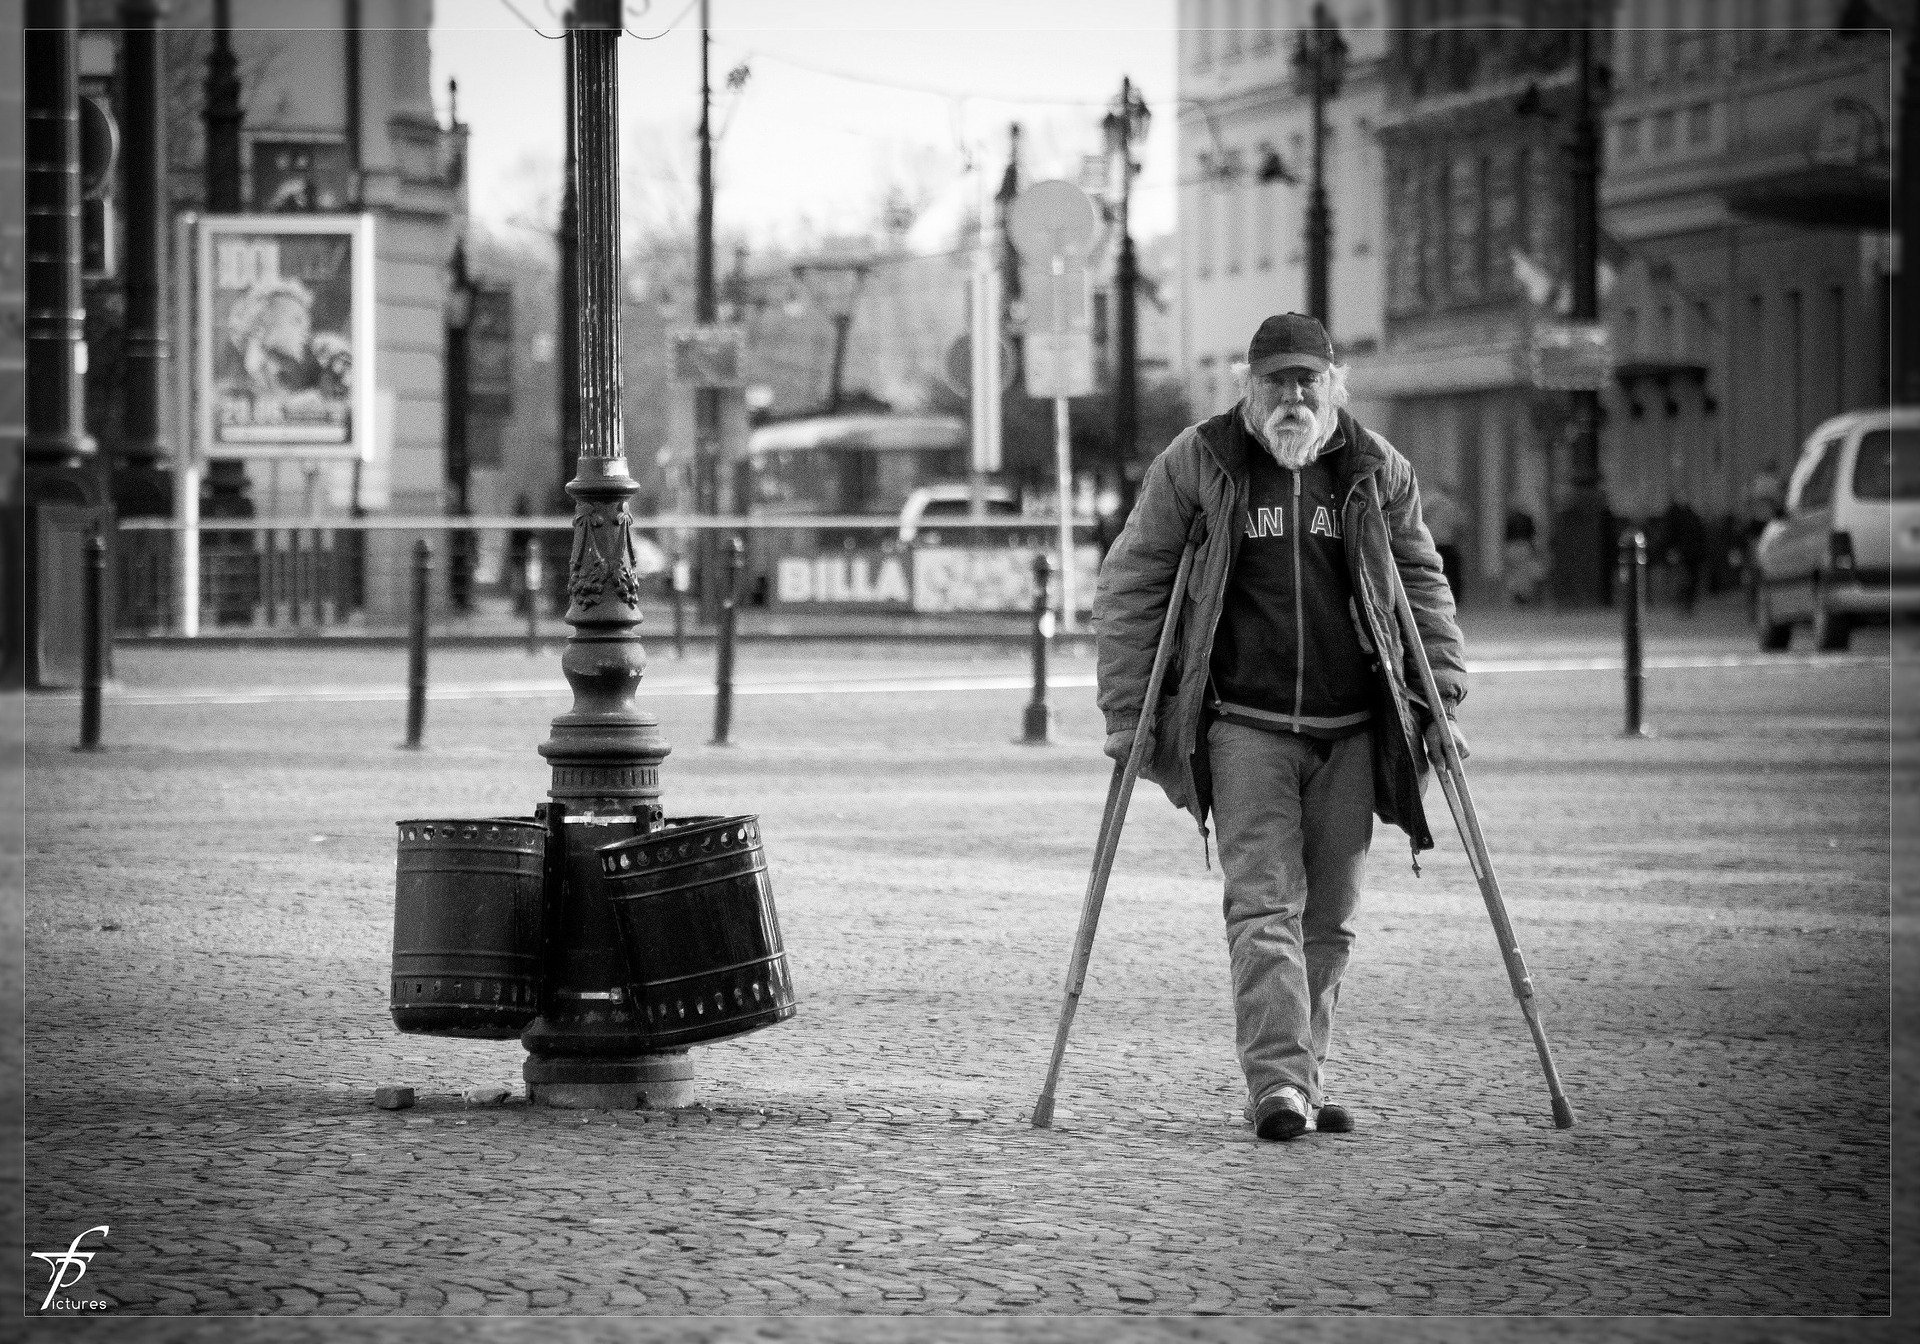 Old man walking on crutches